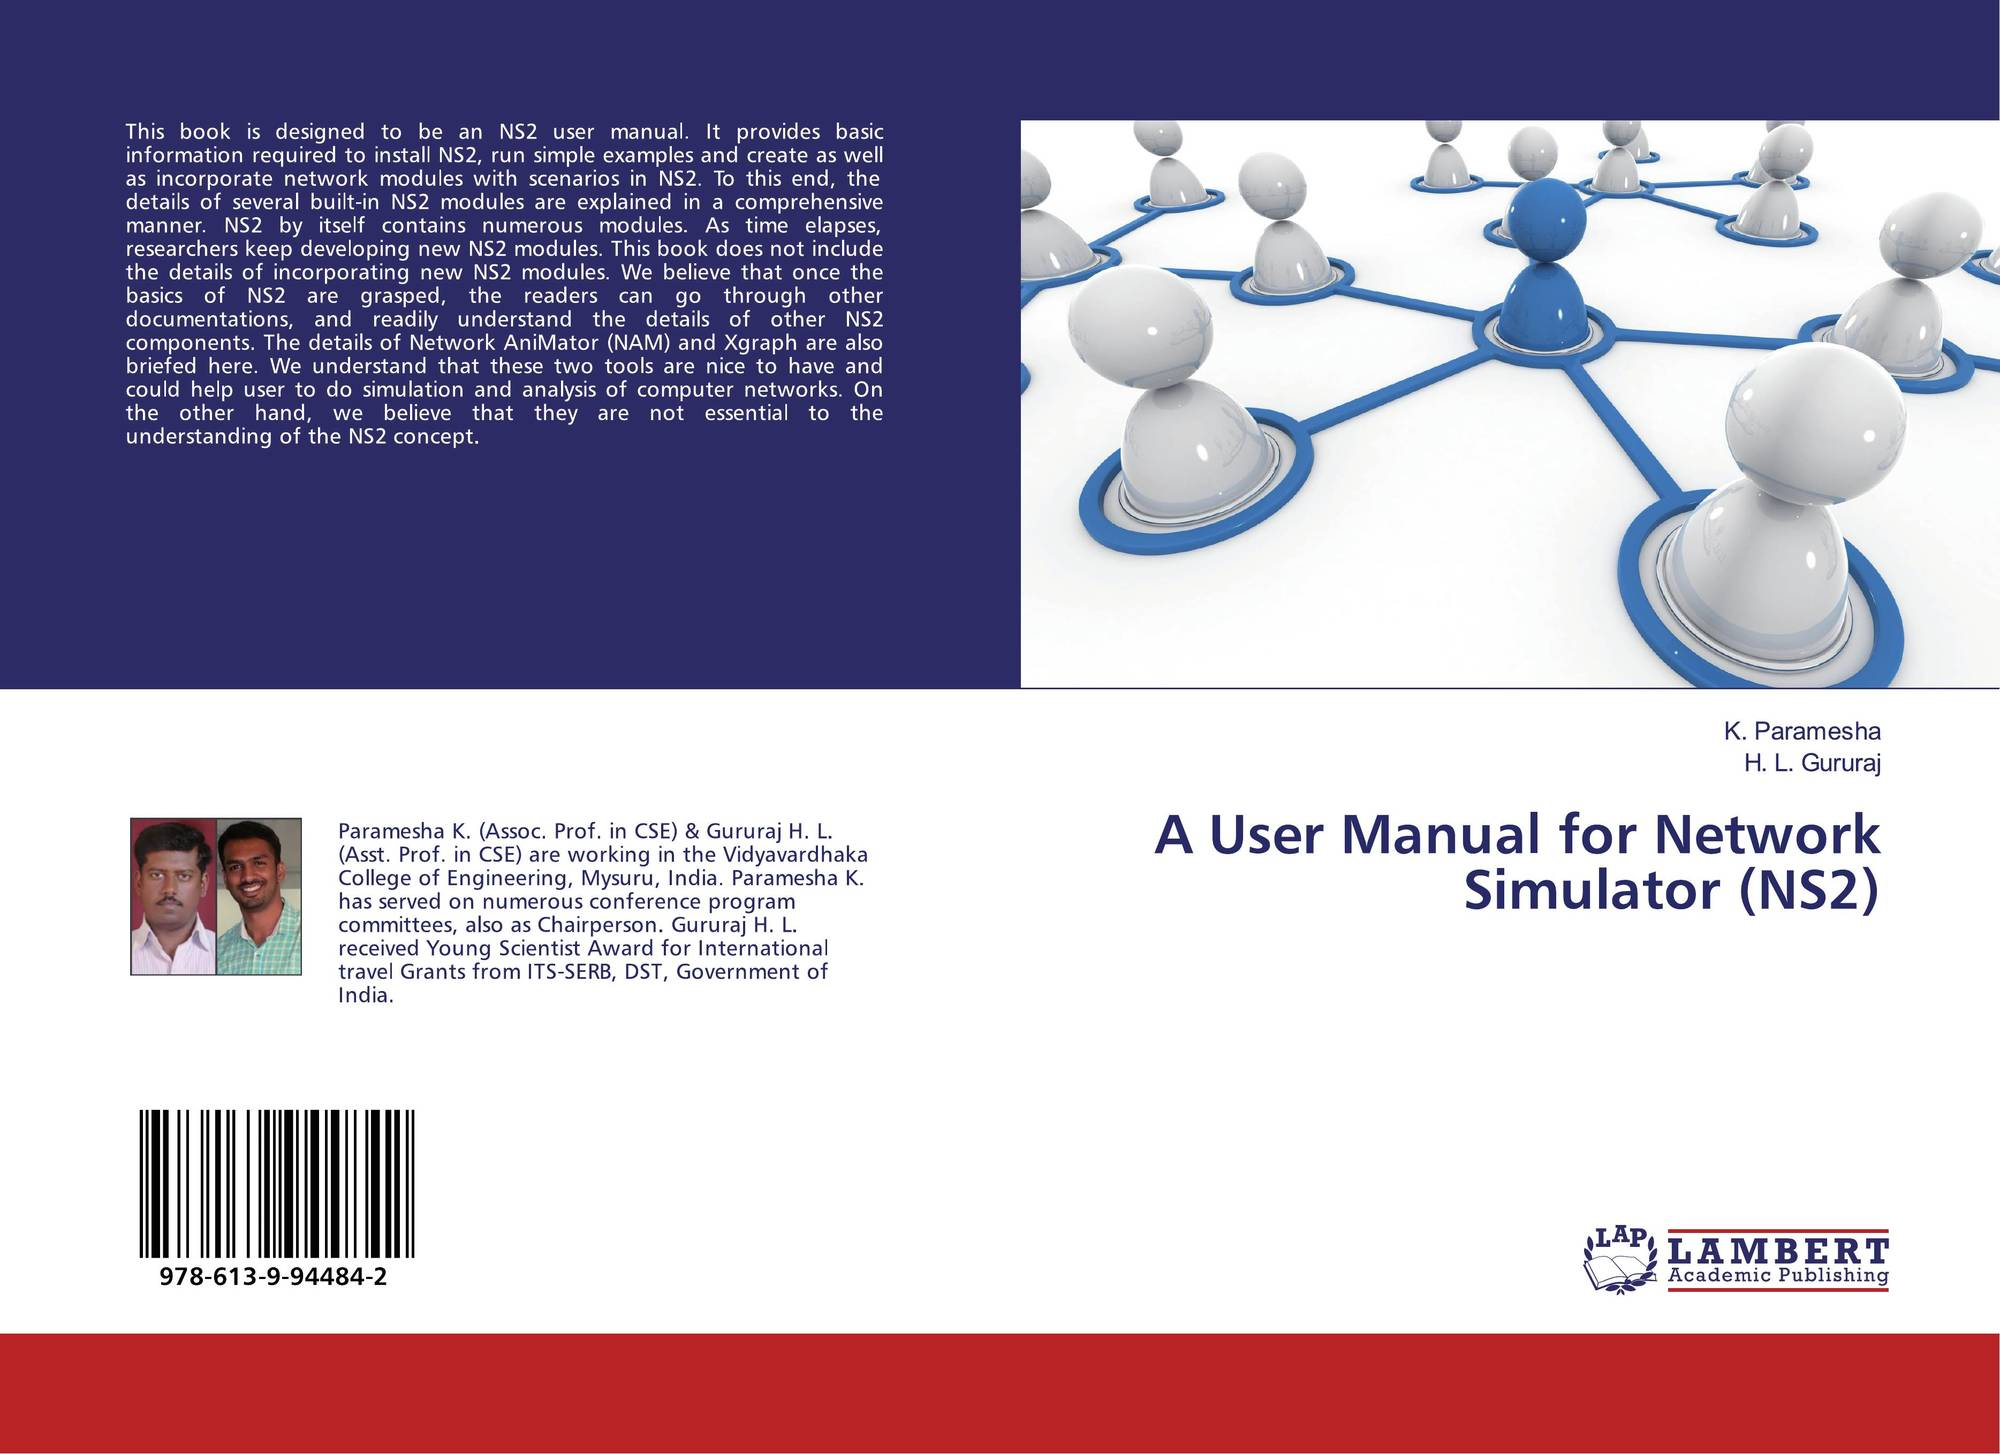 A User Manual for Network Simulator (NS2), 978-613-9-94484-2